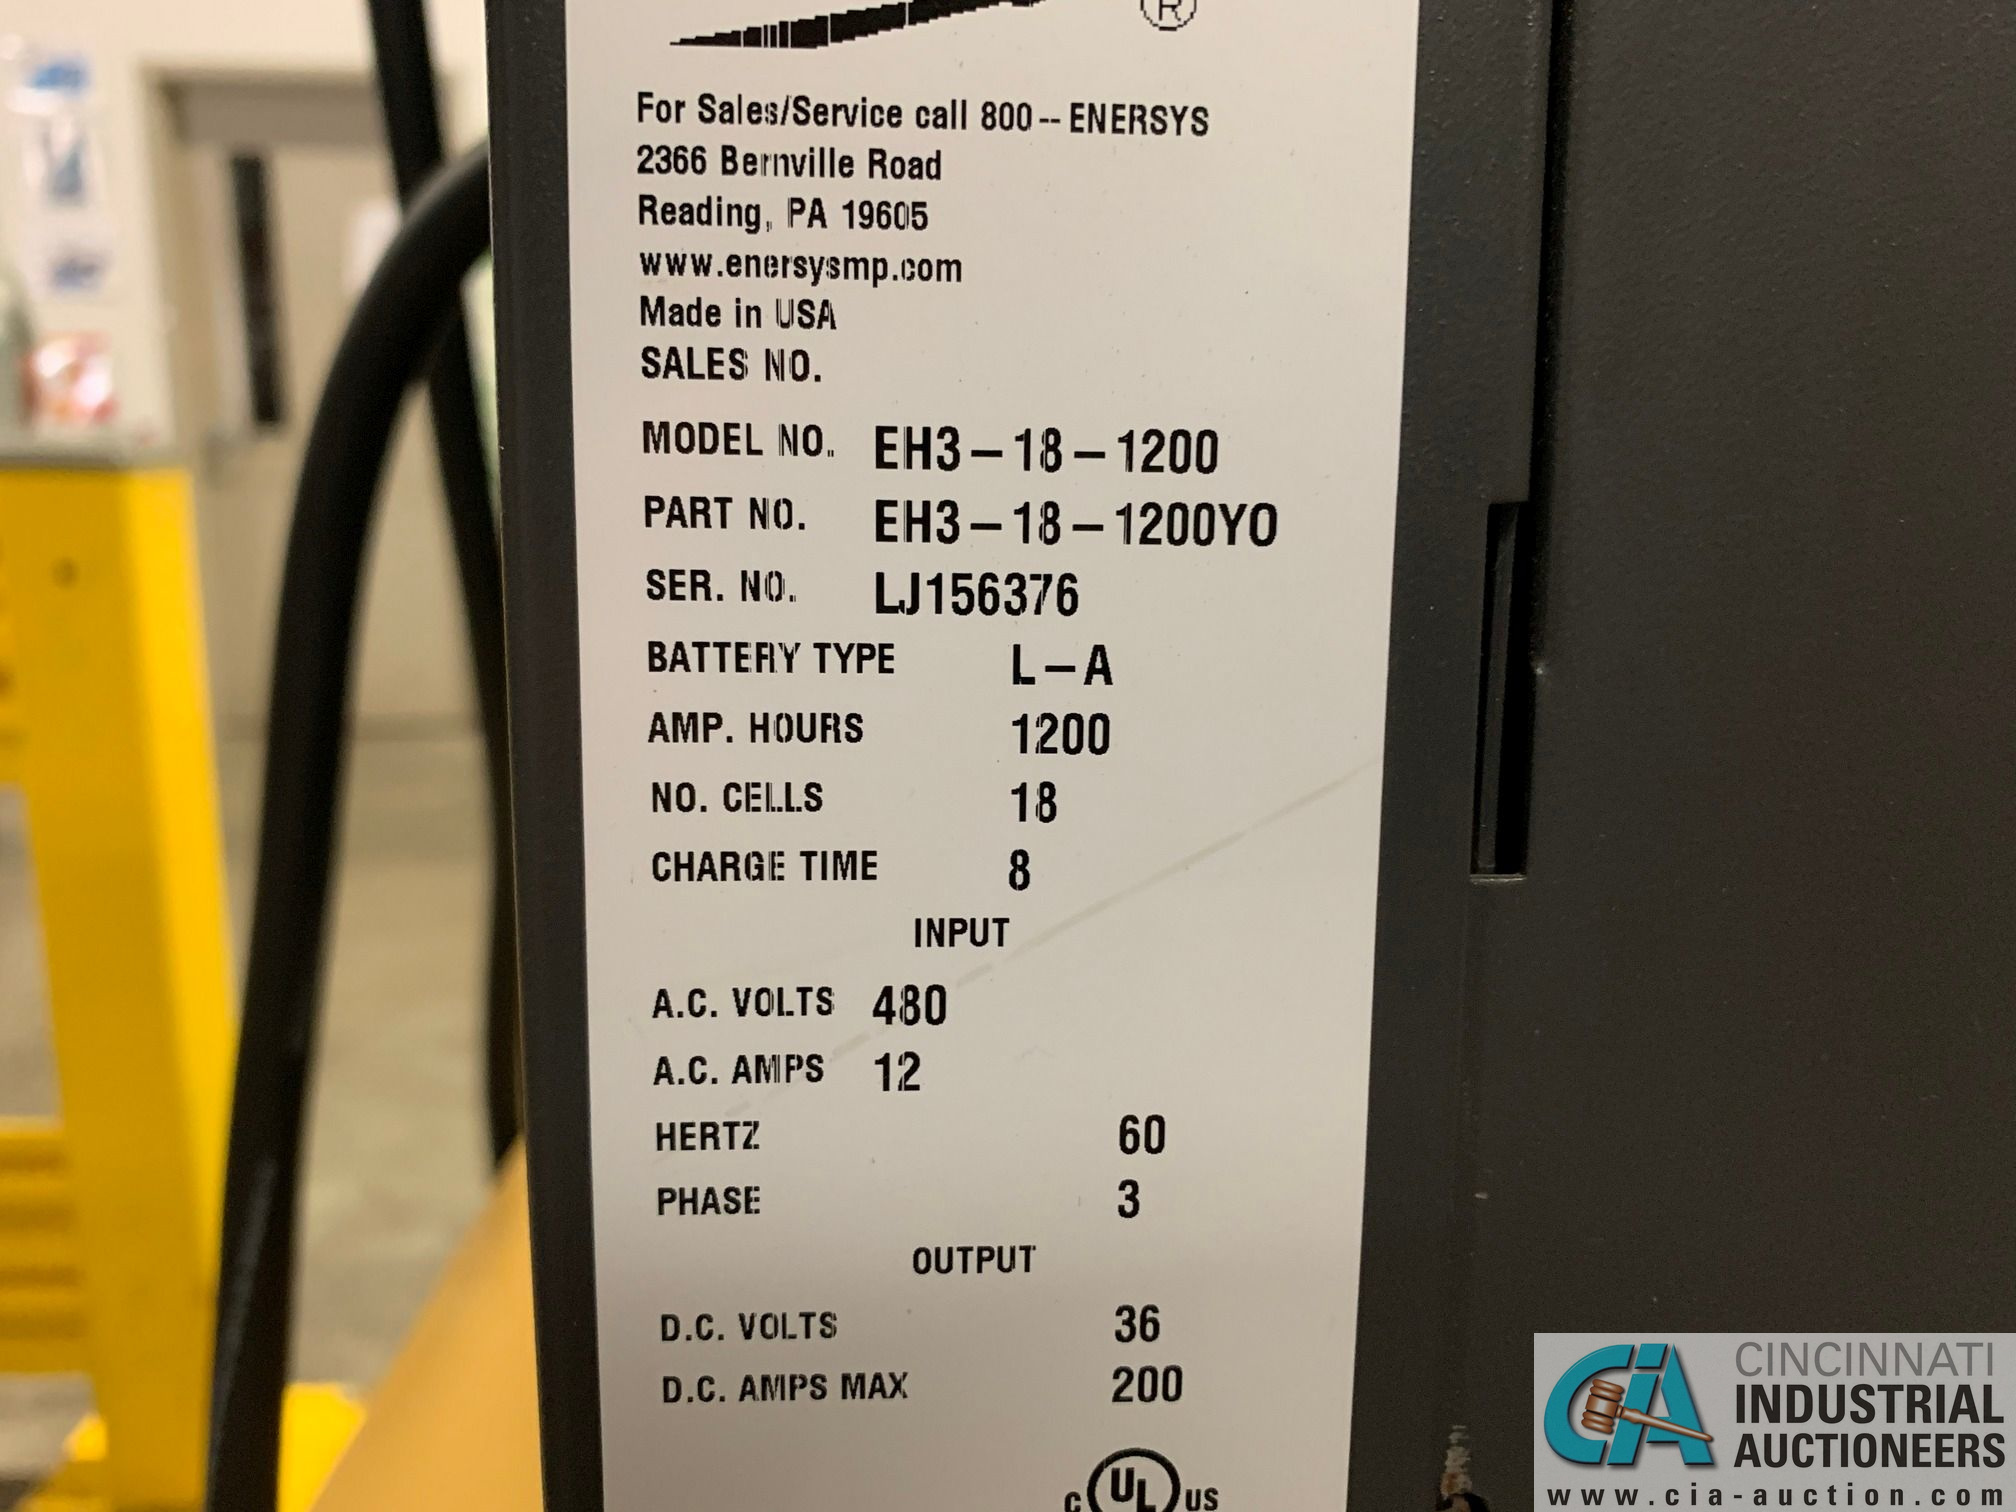 ENERSYS MODEL EH3-18-1200 ENFORCER HF BATTERY CHARGER WITH STAND **LOCATED IN MAIN CHARGE AREA** - Image 2 of 4